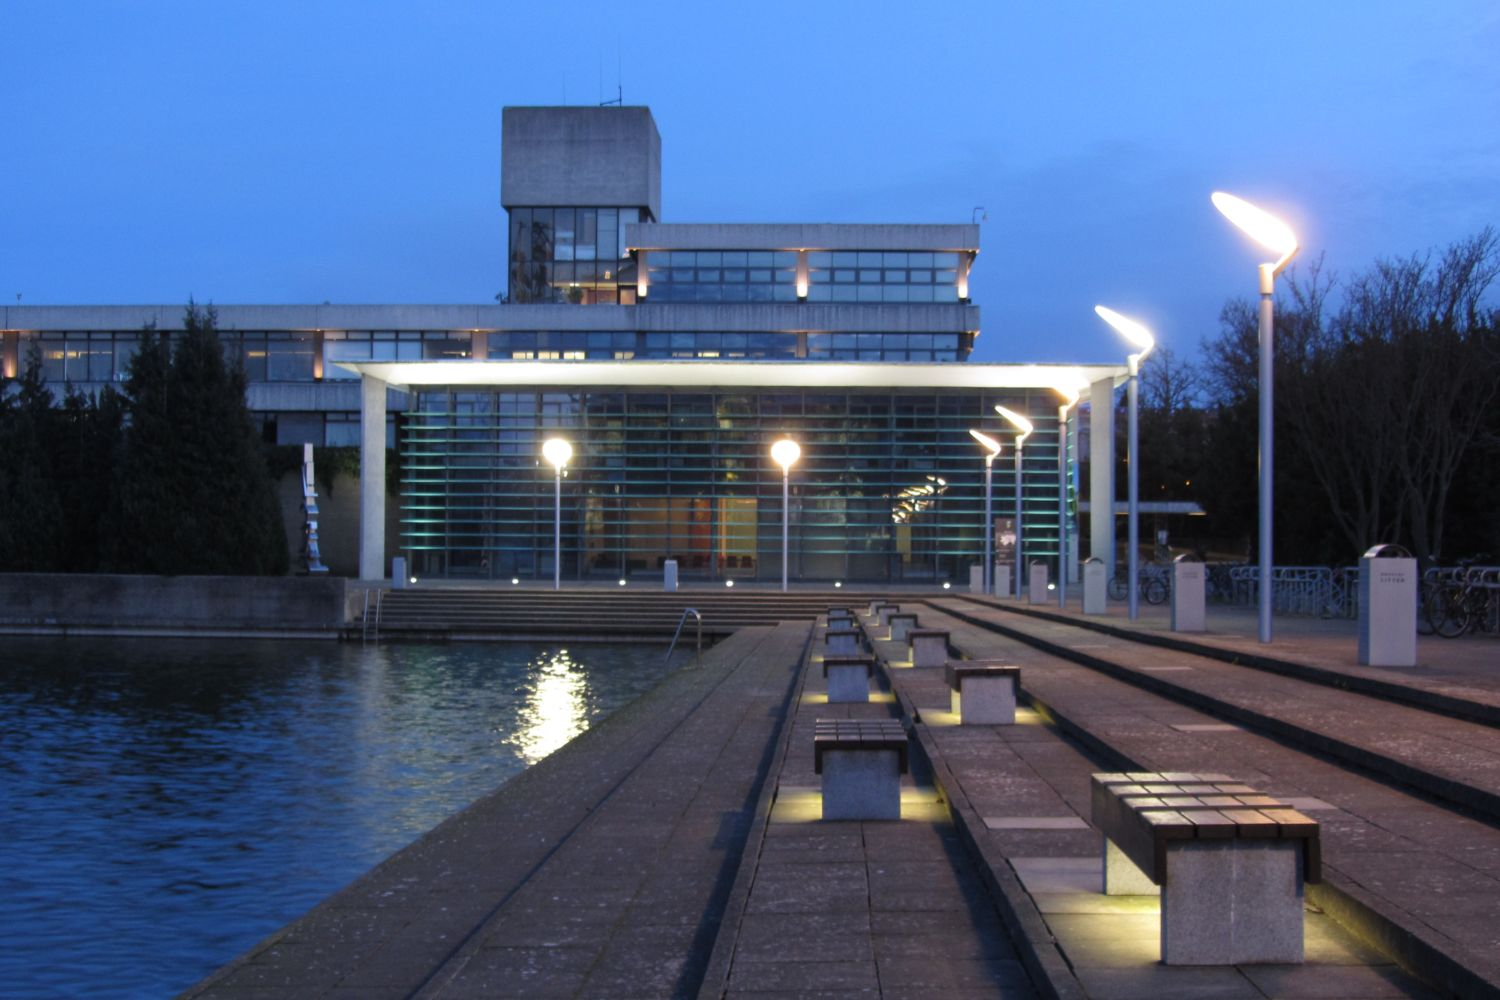 UCD, Belfield (view)